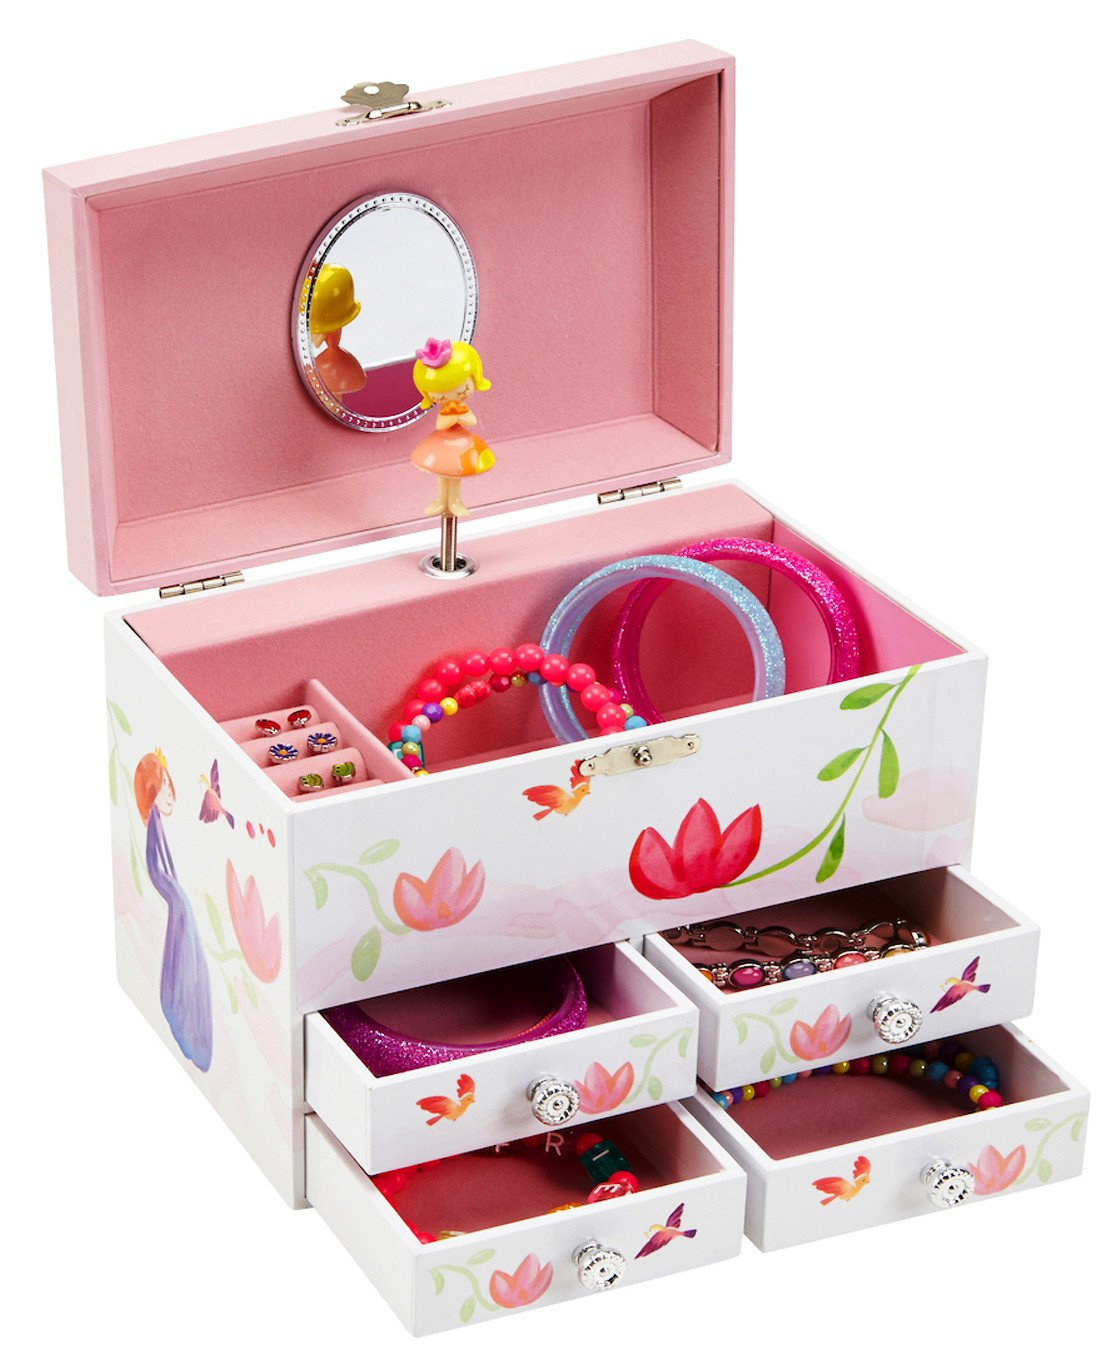 JewelKeeper Princess And Flowers Large Musical Jewelry Storage Box With 4  Pullout Drawers, Girlu0027s Jewel